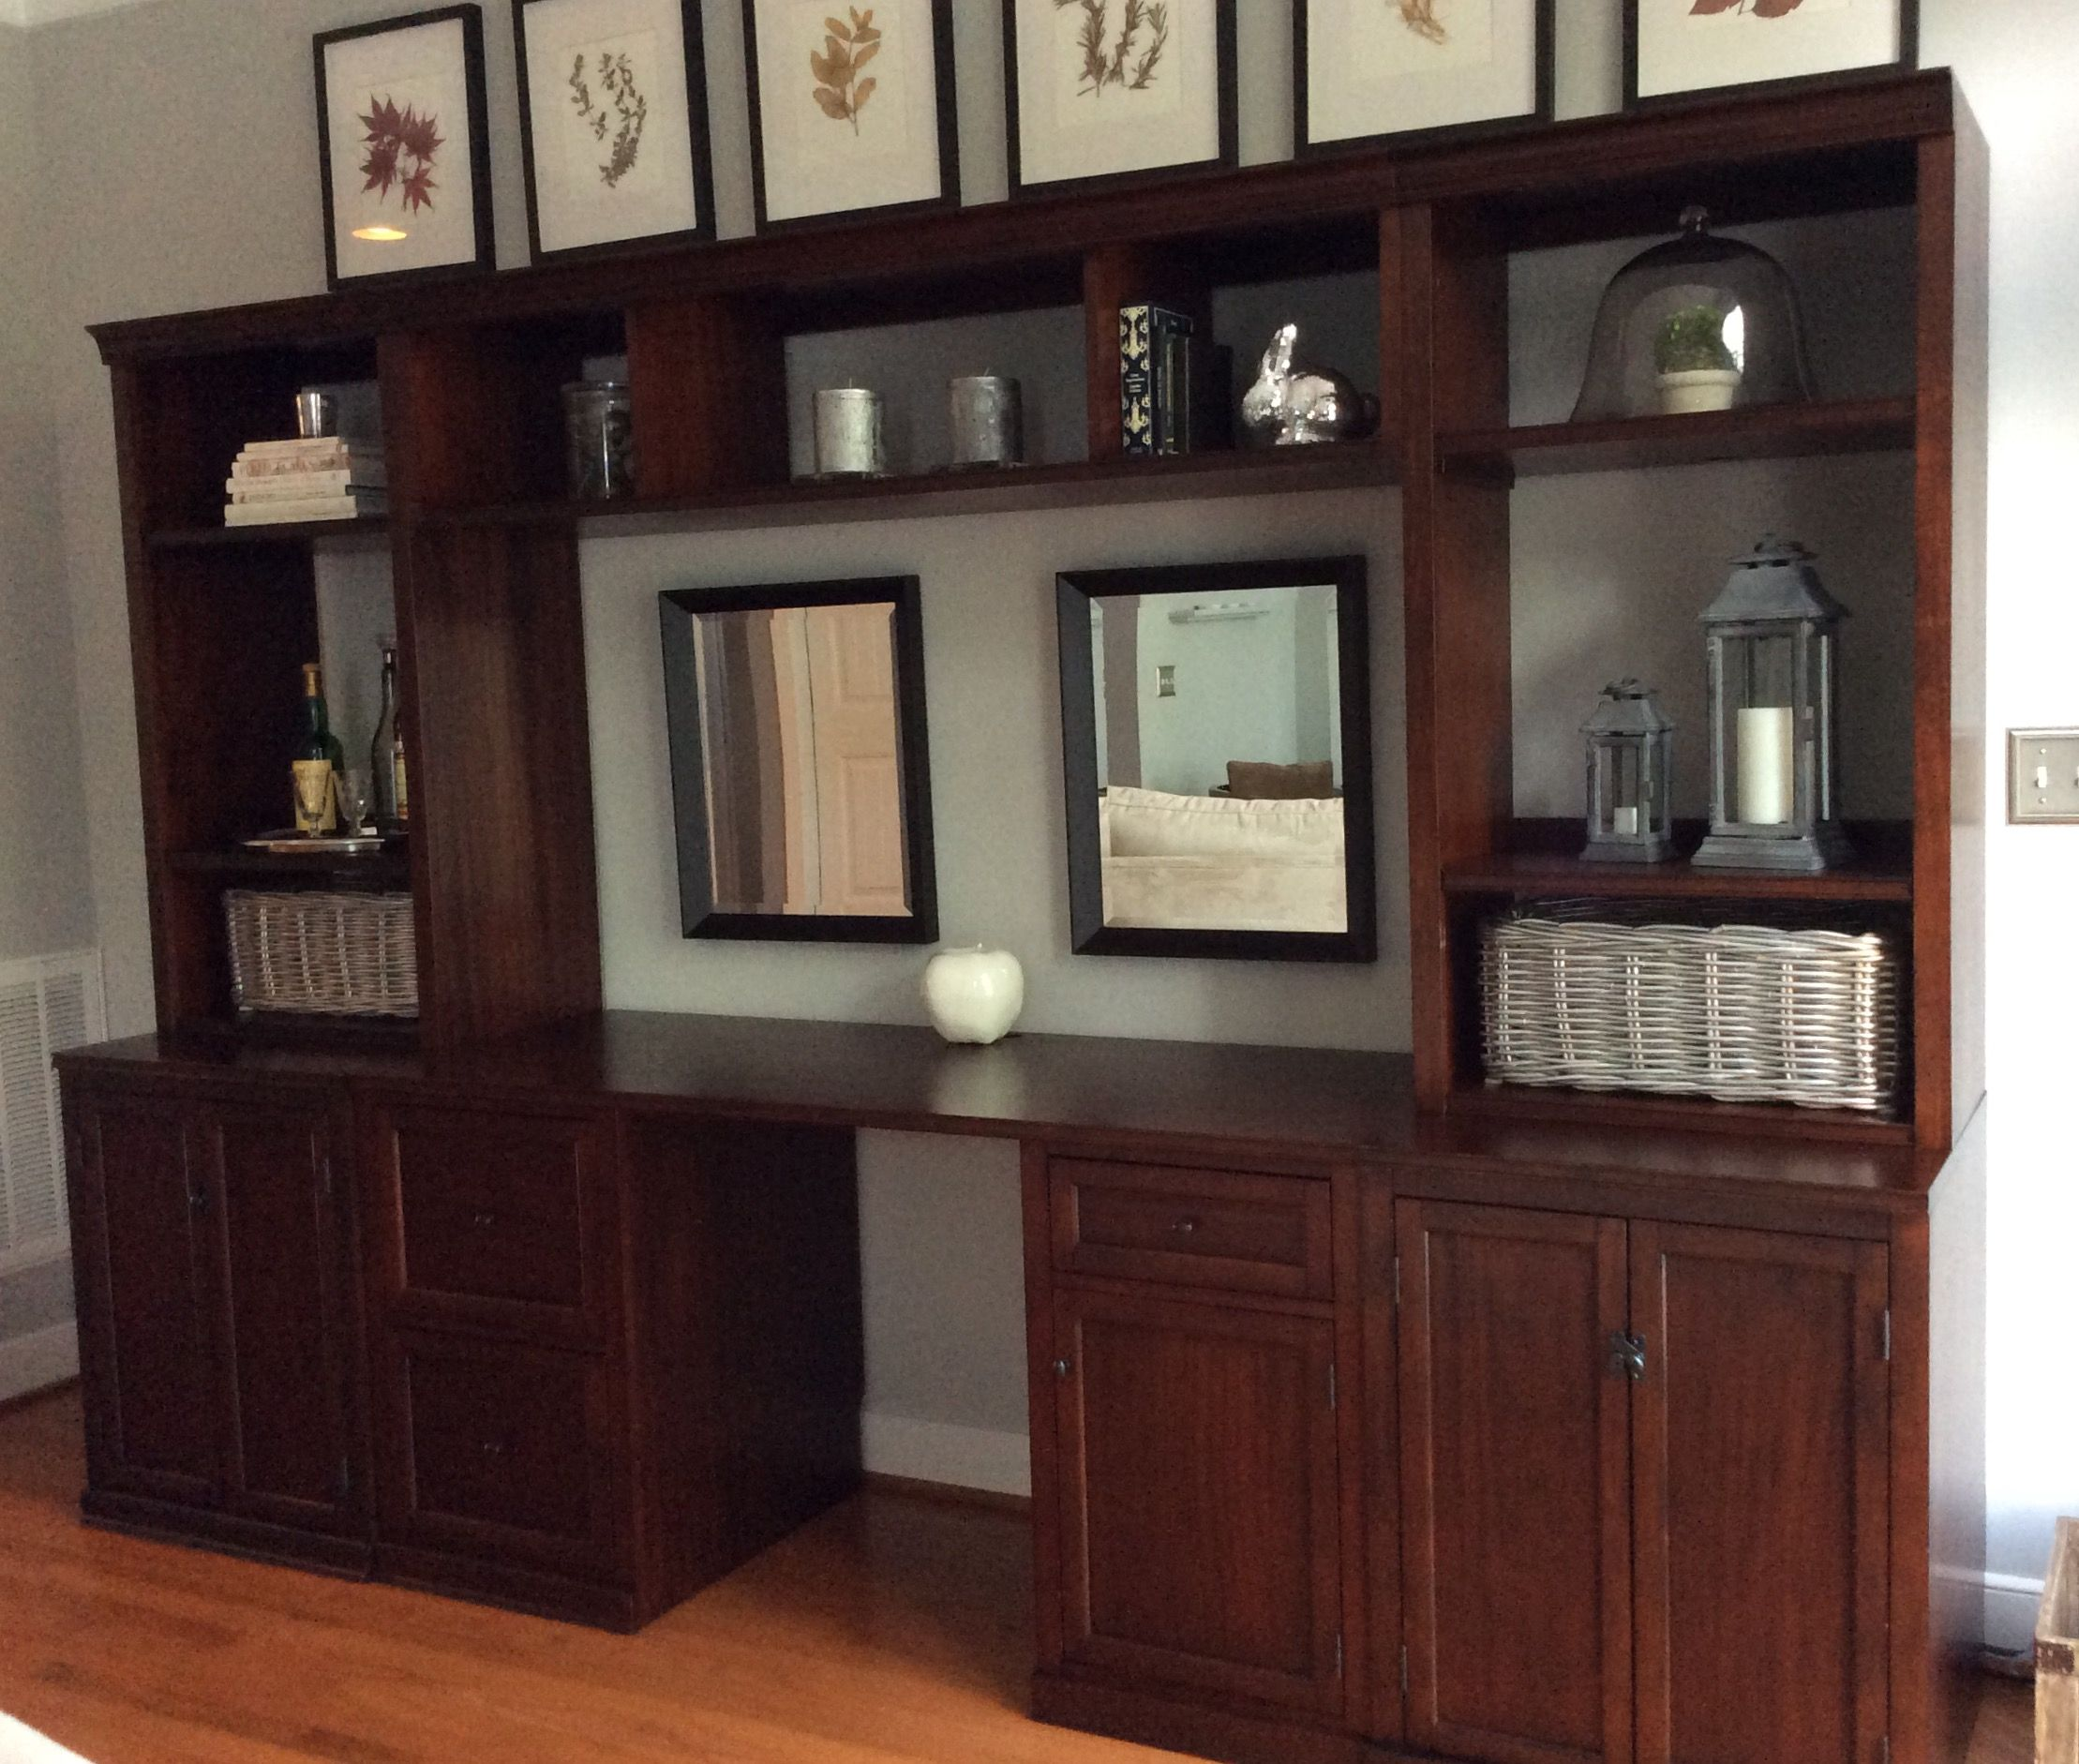 Logan Media Center - Pottery Barn - $1350 | Items for sale ...